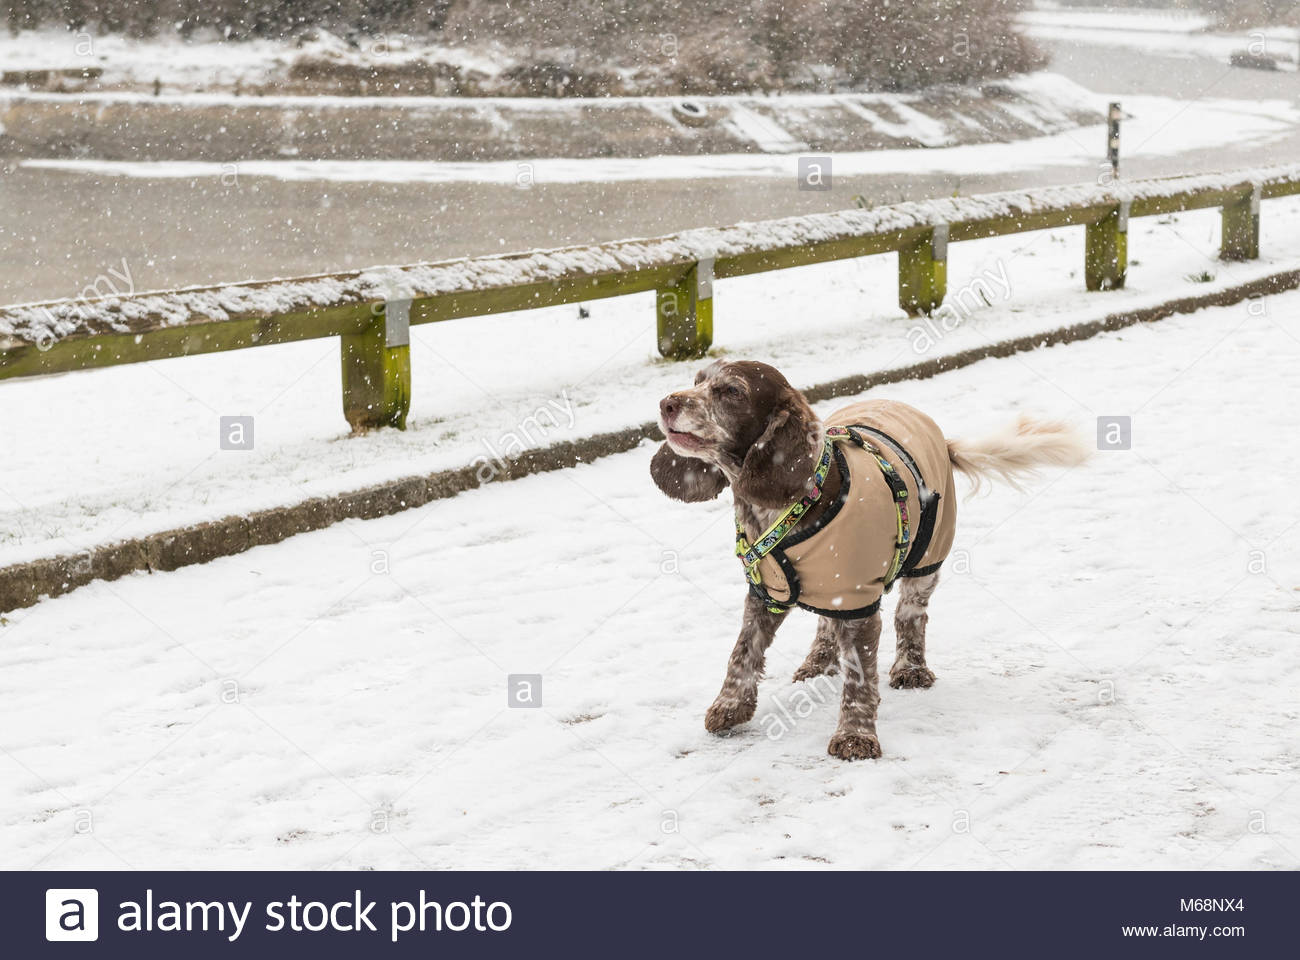 Cold happy dog in the snow wearing a coat, wagging it's tail in the park while snowing in Winter. - Stock Image